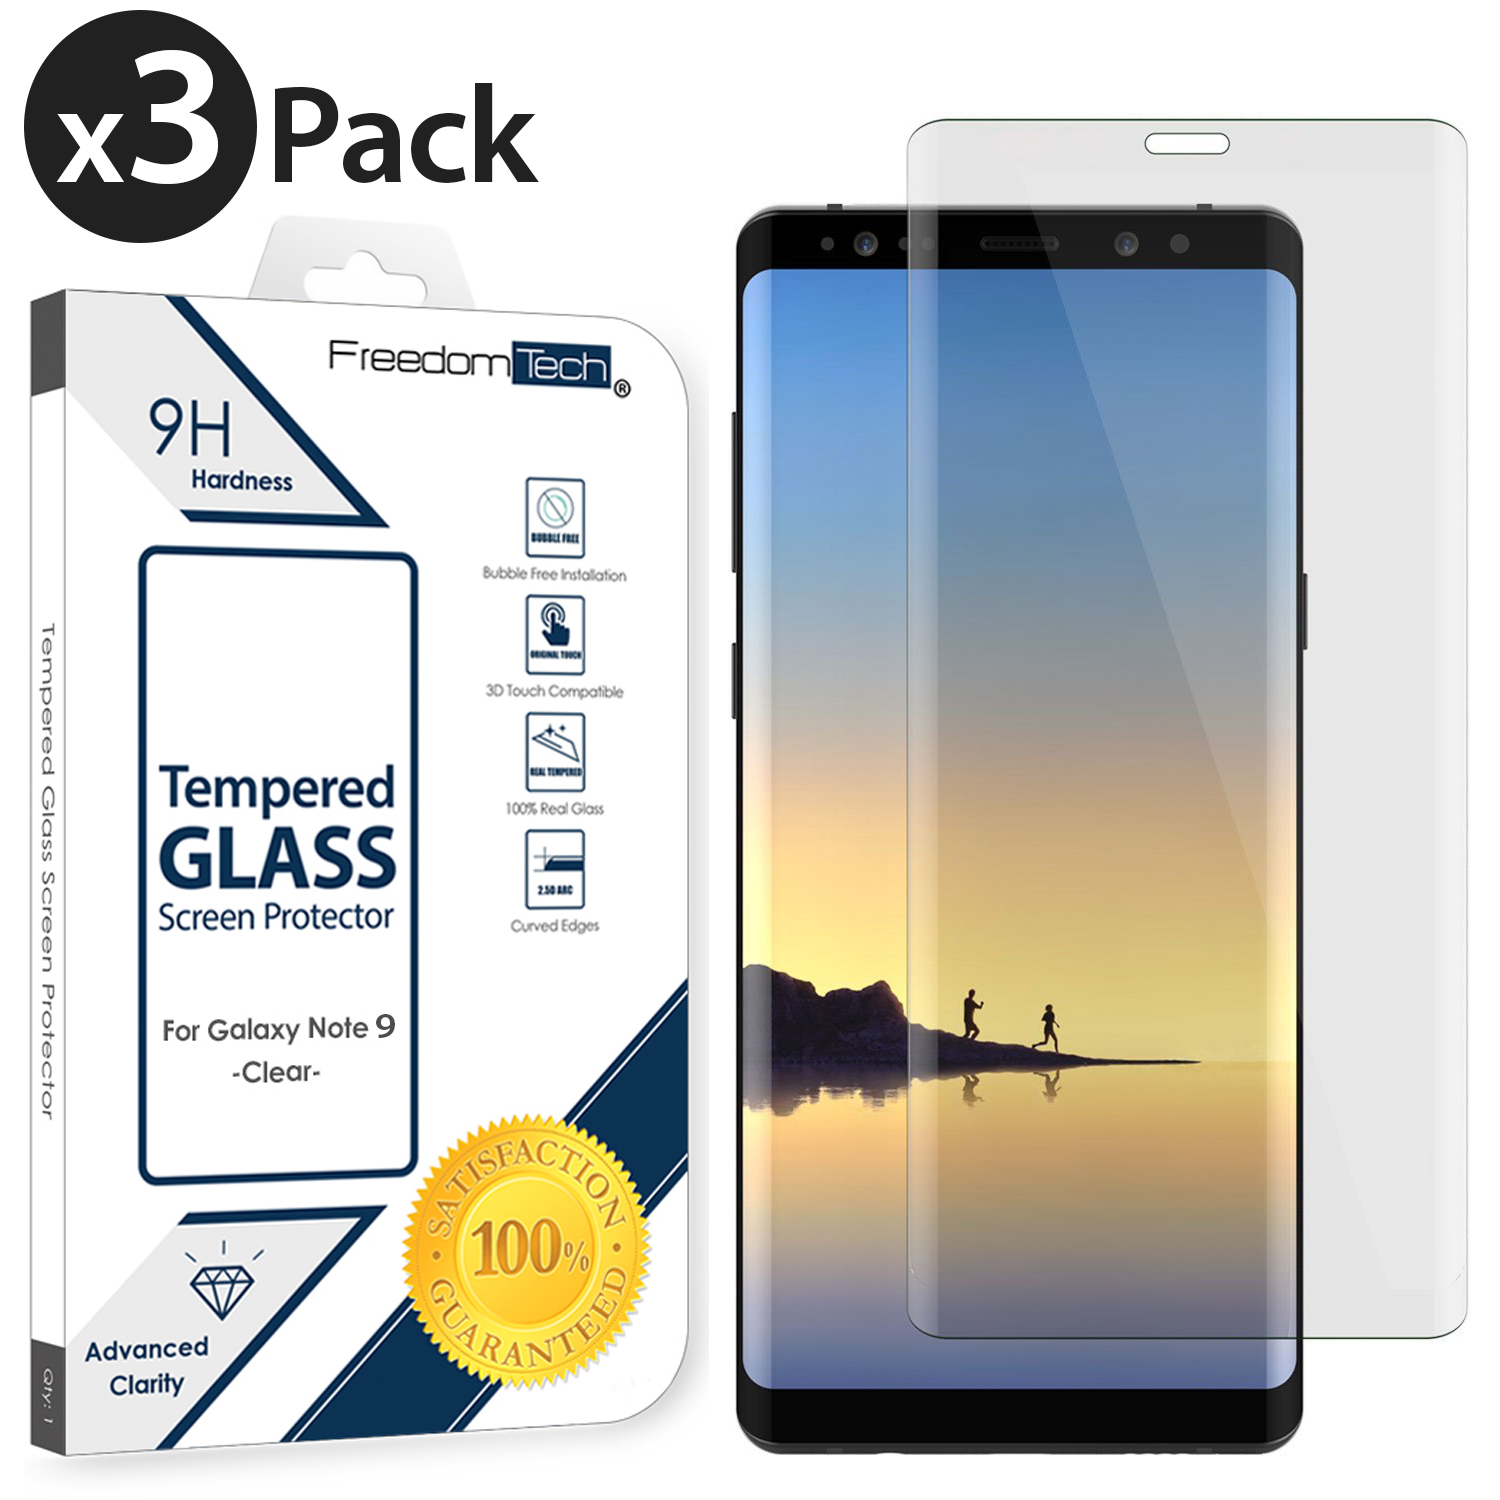 SGIN Galaxy Note 9 Screen Protector, Transparent HD Clear for Samsung Galaxy Note 9 Tempered Glass Screen Protector Anti-Fingerprint Bubble Free 9H Hardness Protector Film Crystal Clear 2 Pack